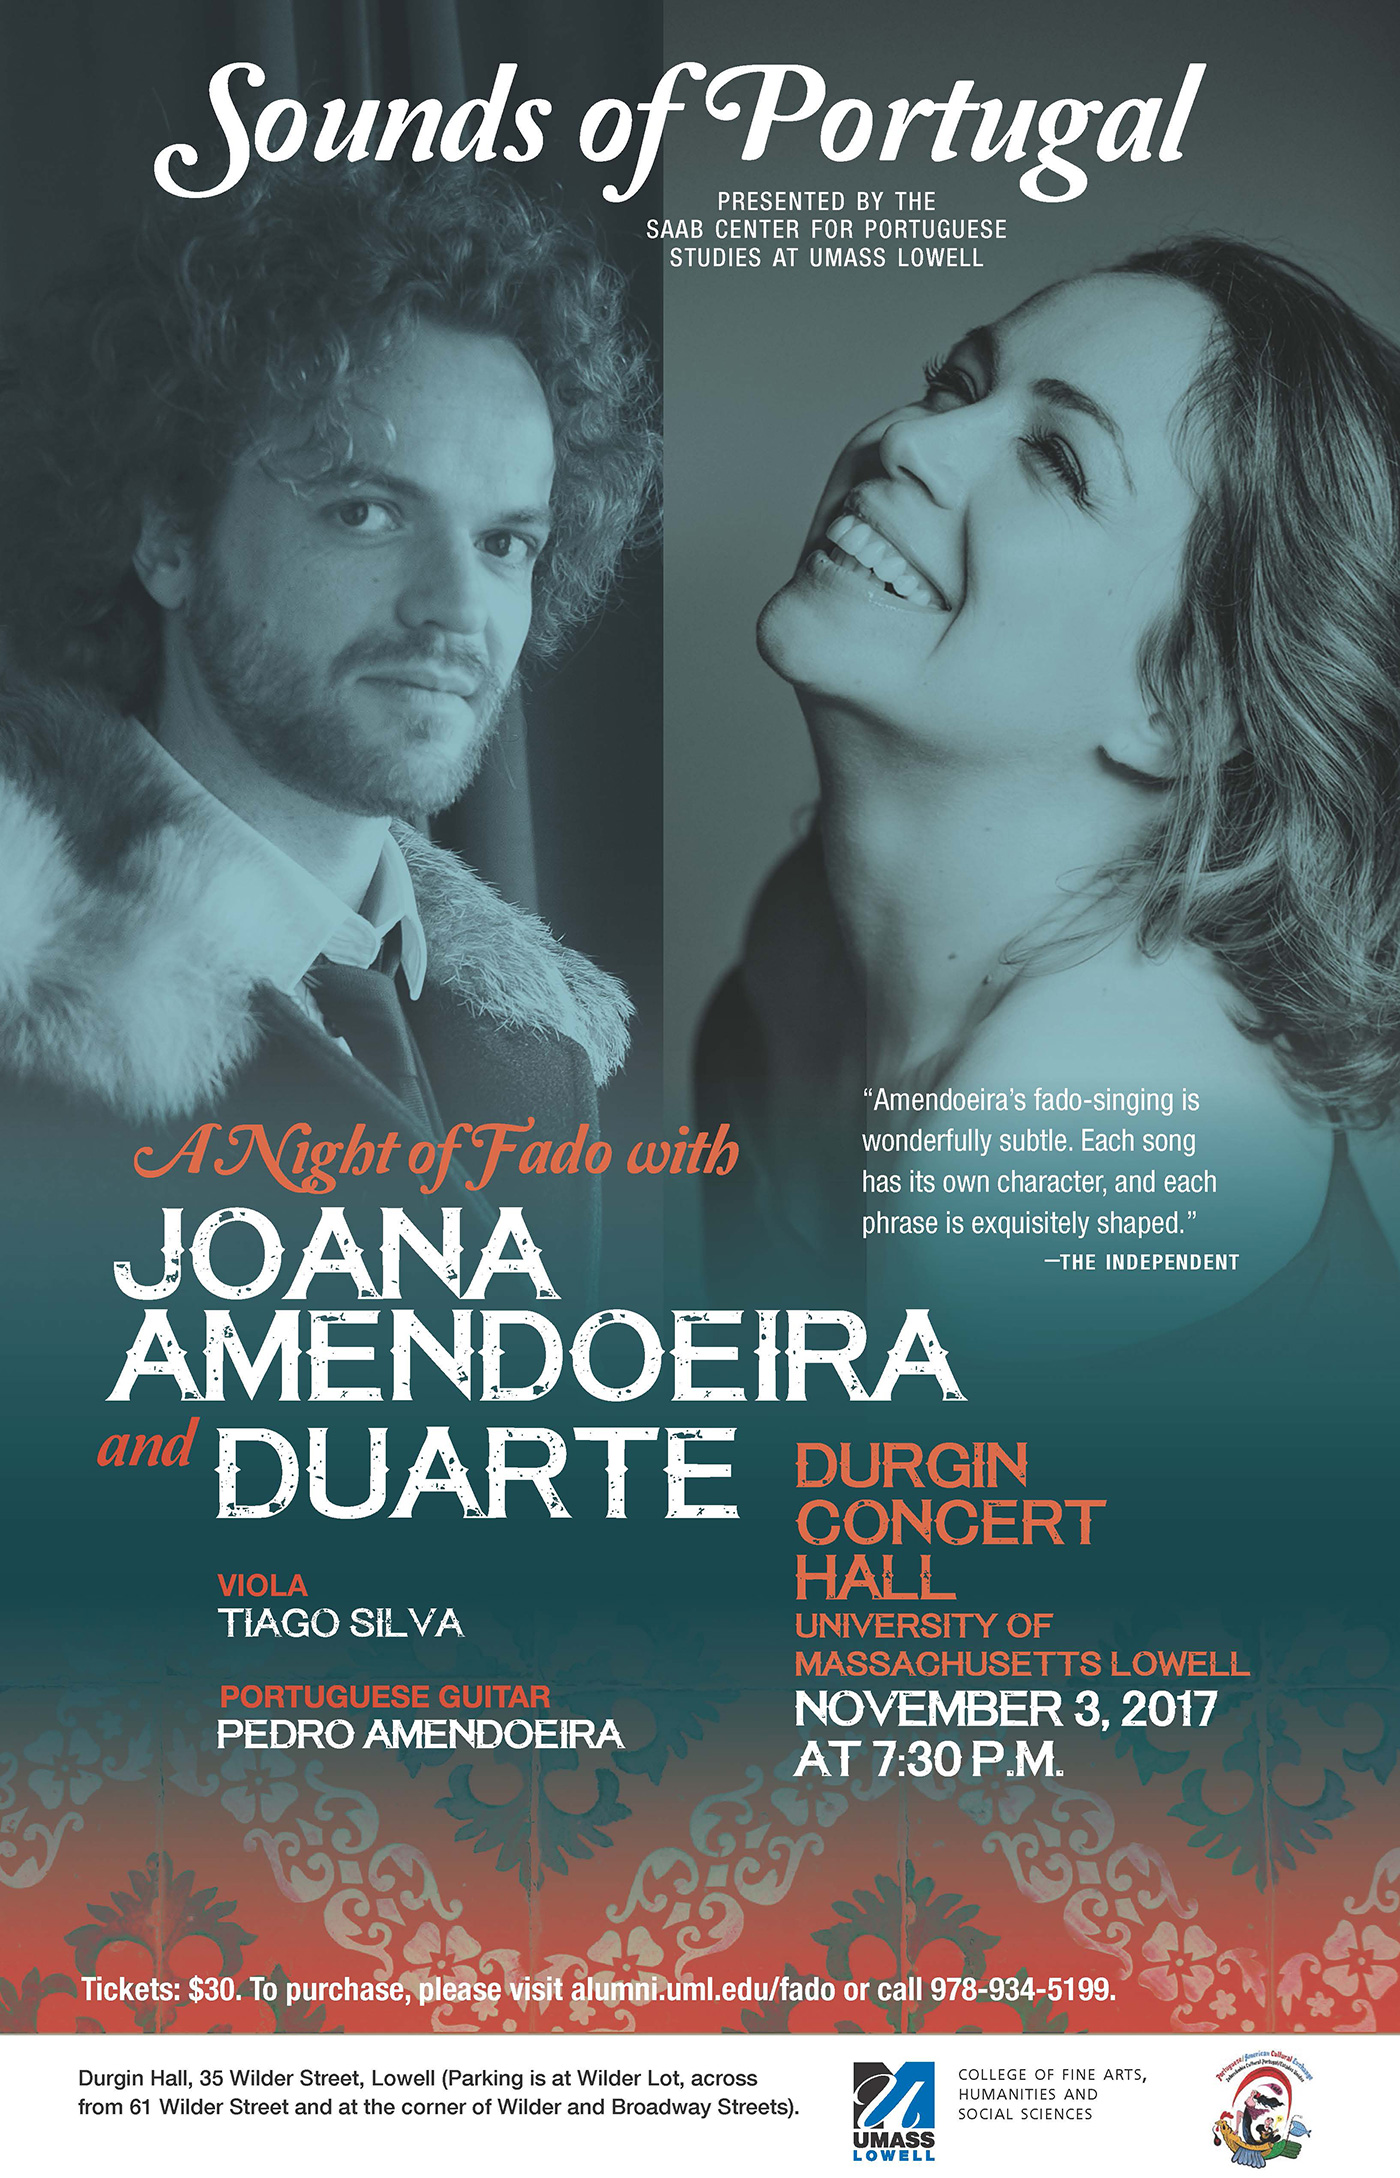 Flyer for event: Sounds of Portugal: A night of fado with Joana Amendoeira and Duarte. Joana is one of the best-known fadistas today, with nine highly acclaimed CDs and critical recognition from the Amália Foundation, among others. This will be her first official US visit.  Duarte is a singer, musician and lyricist, who was recently featured on Public Radio International.